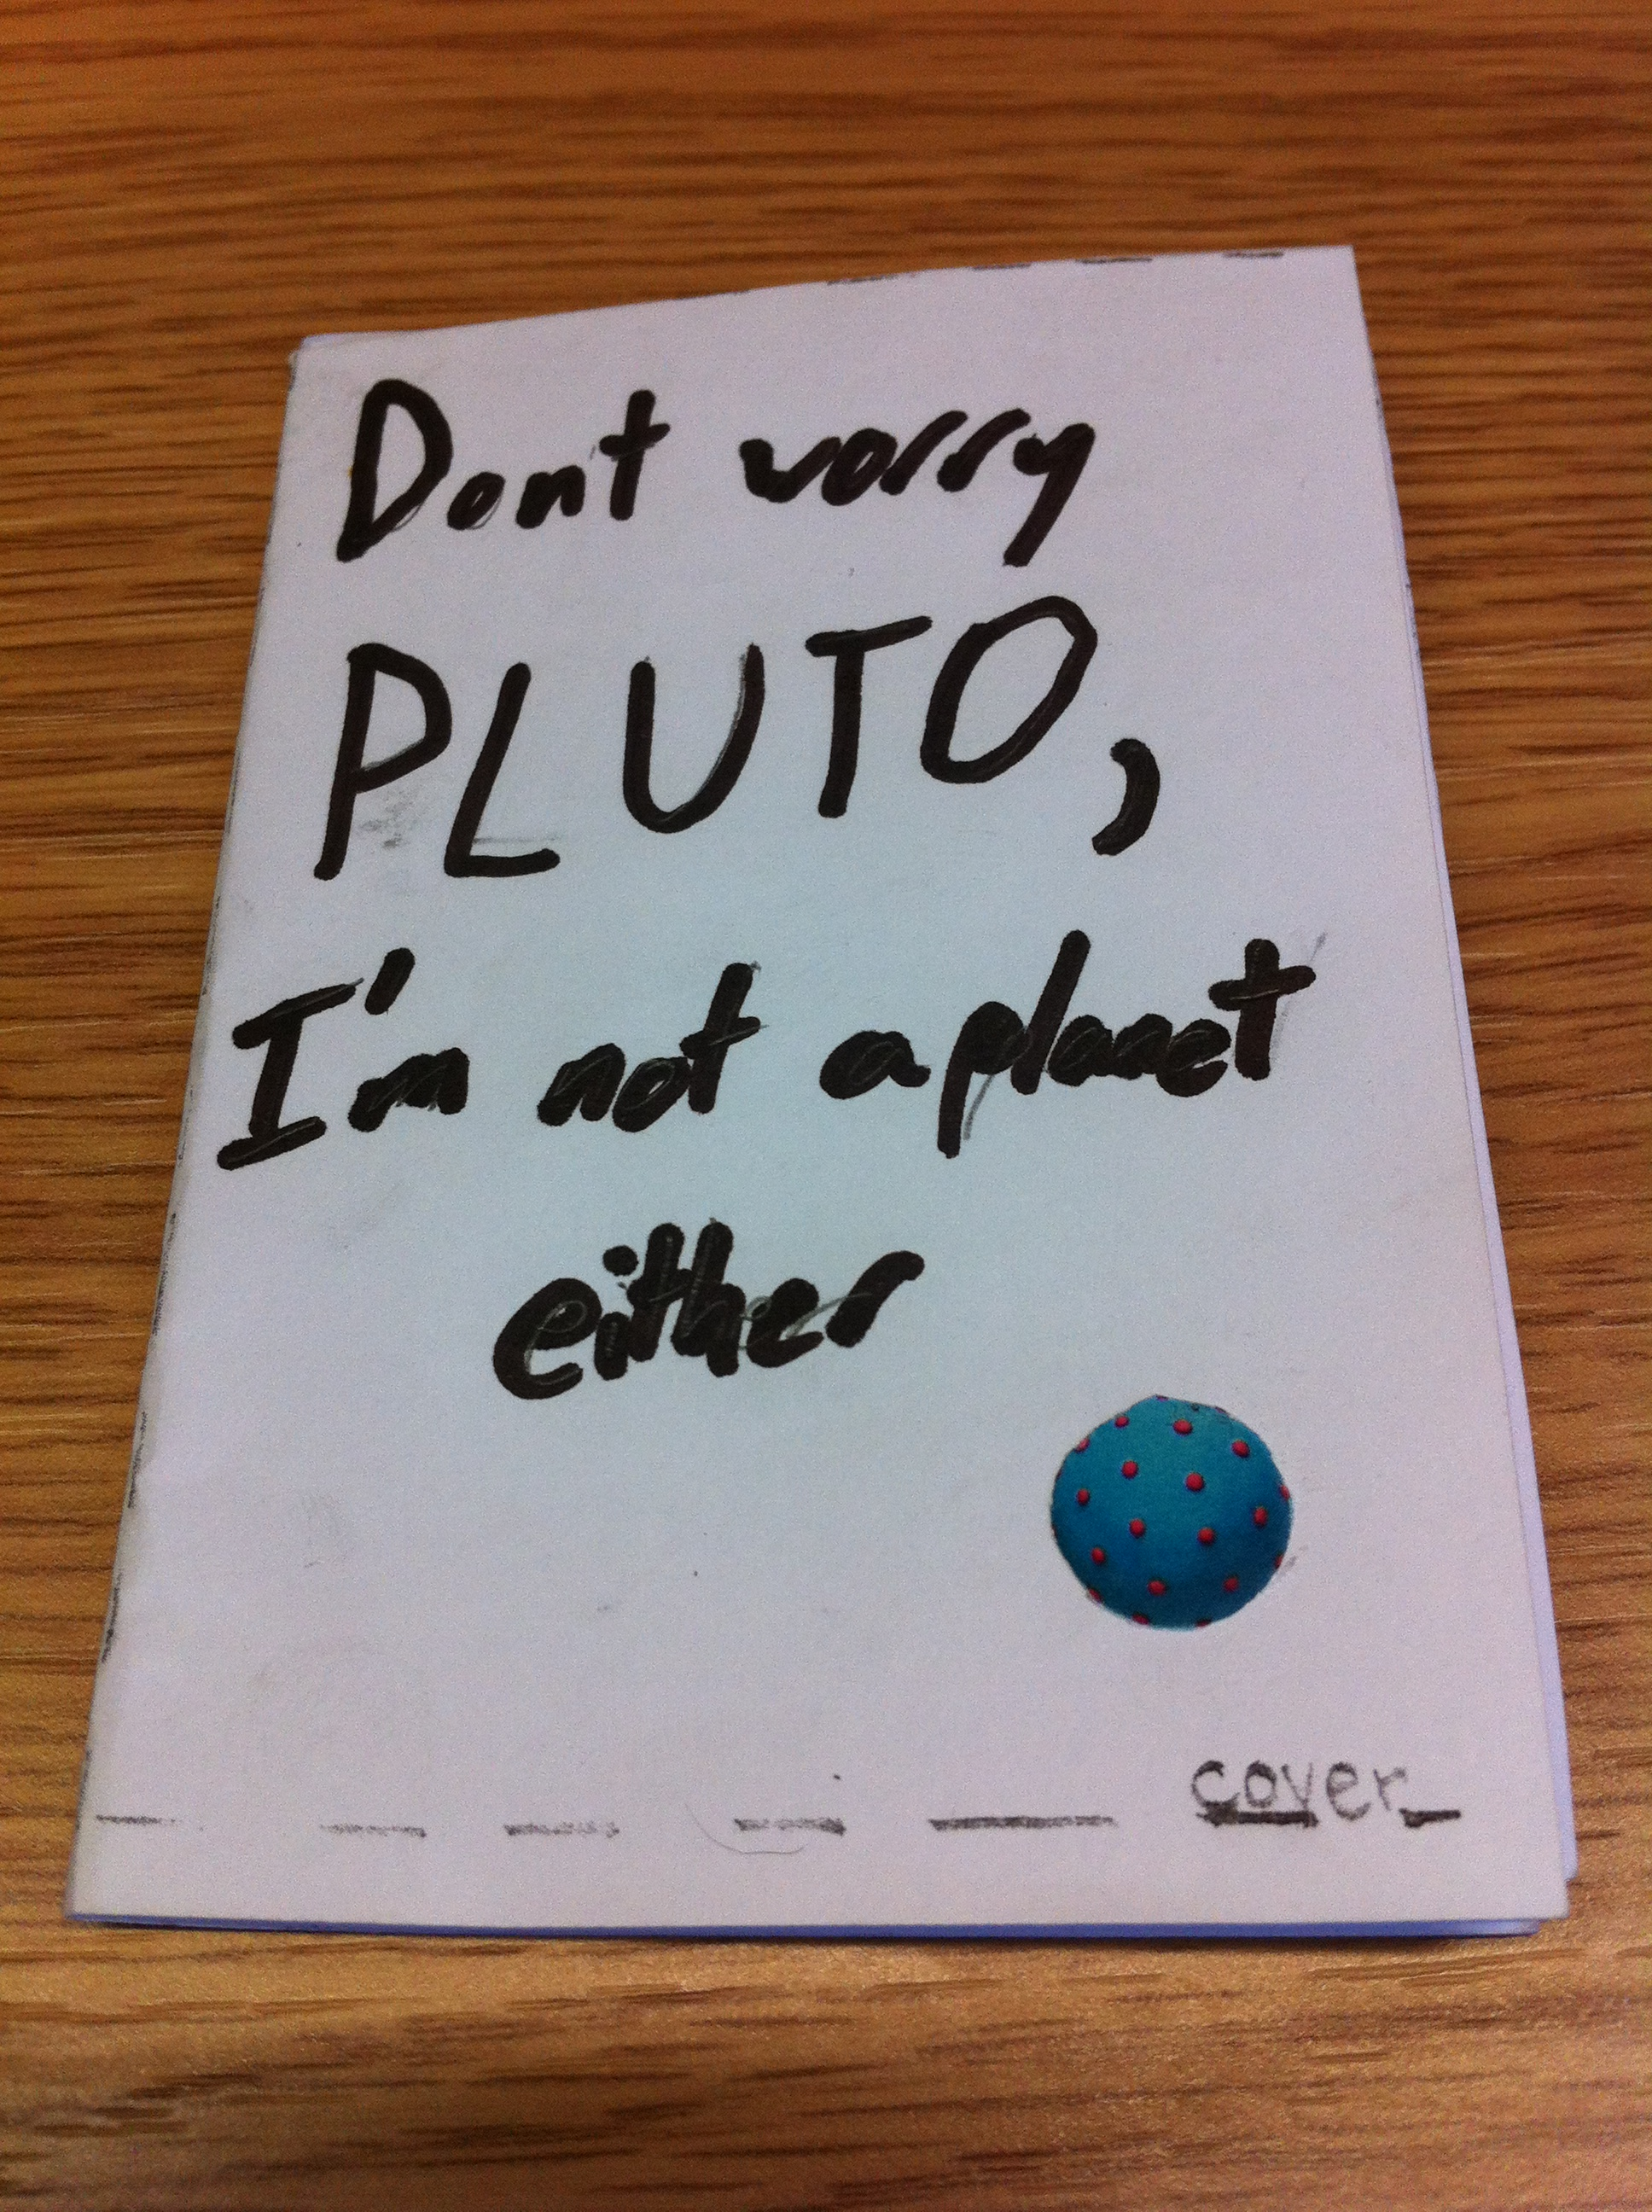 Pluto communications essay